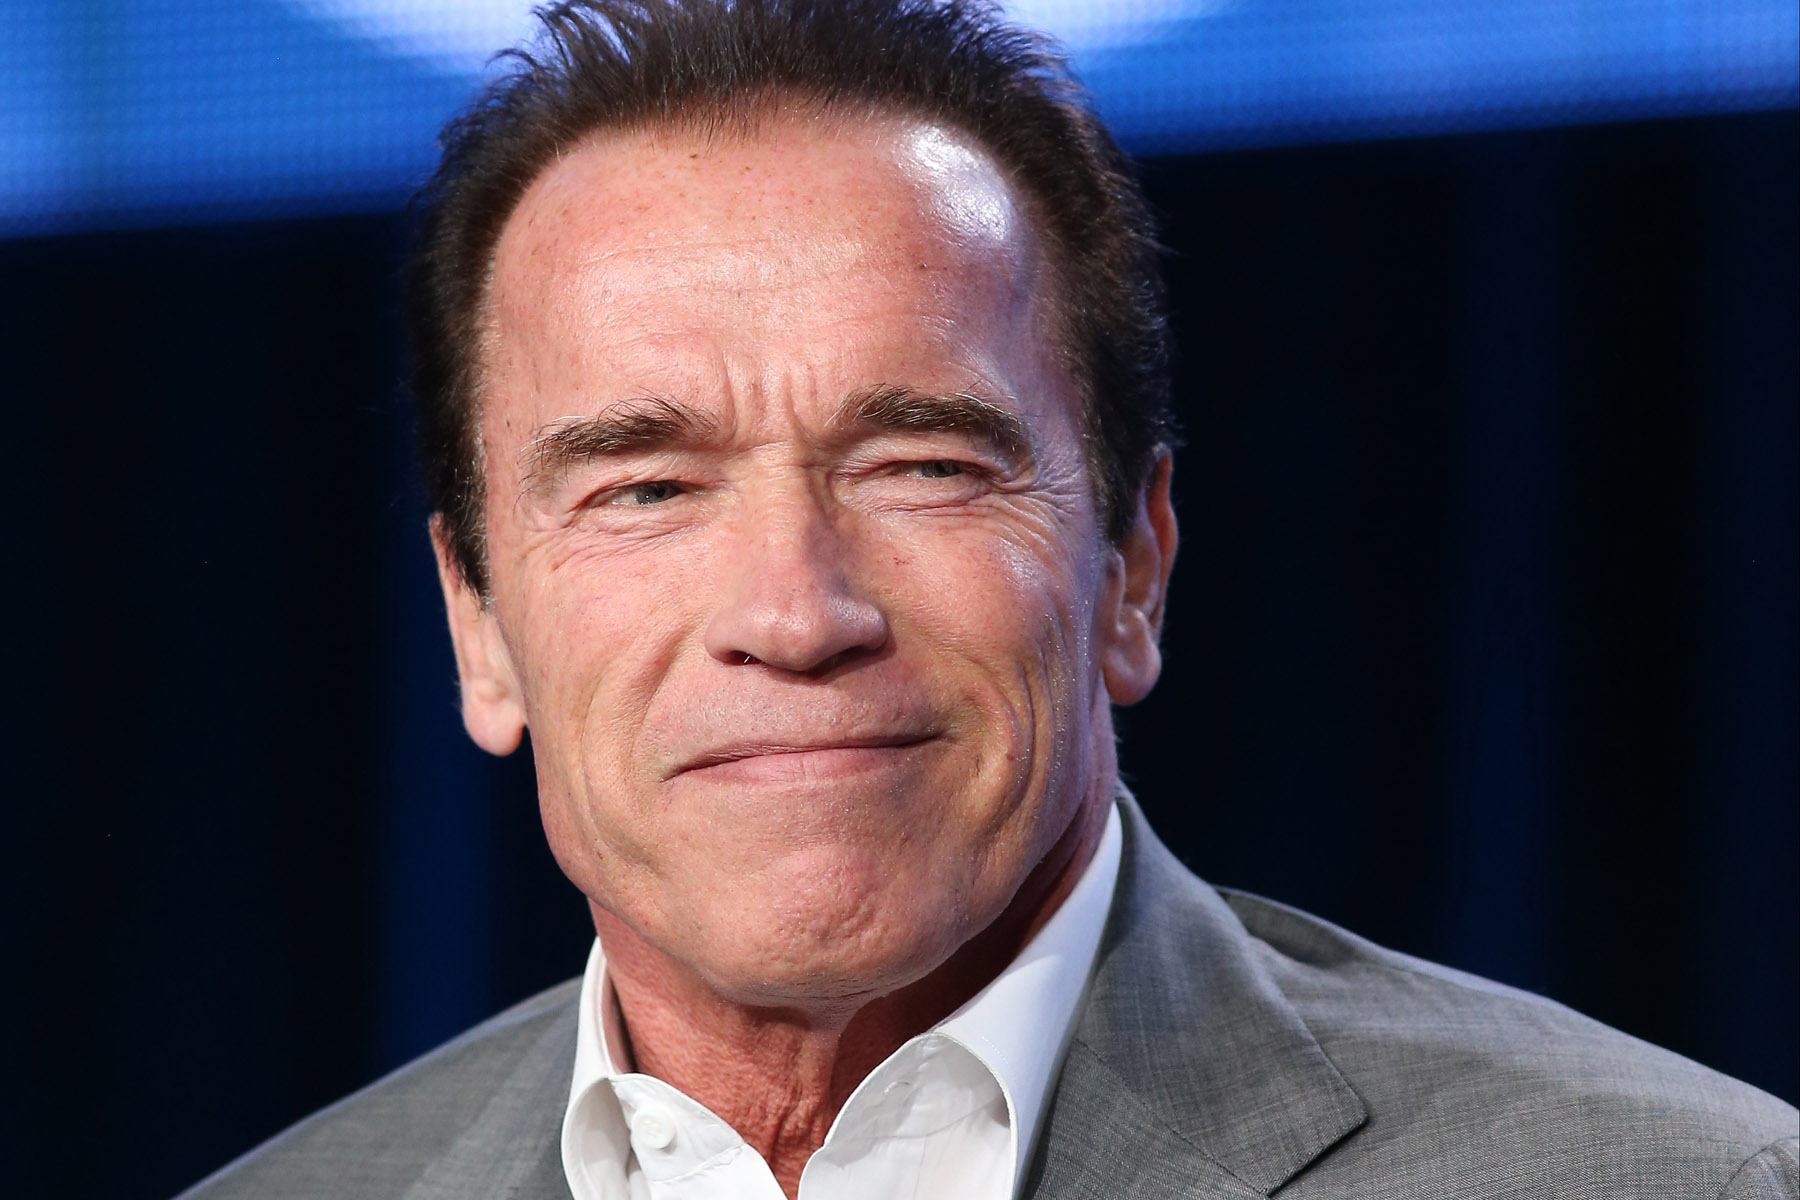 Schwarzenegger says 'I'm back' after recovery from heart surgery